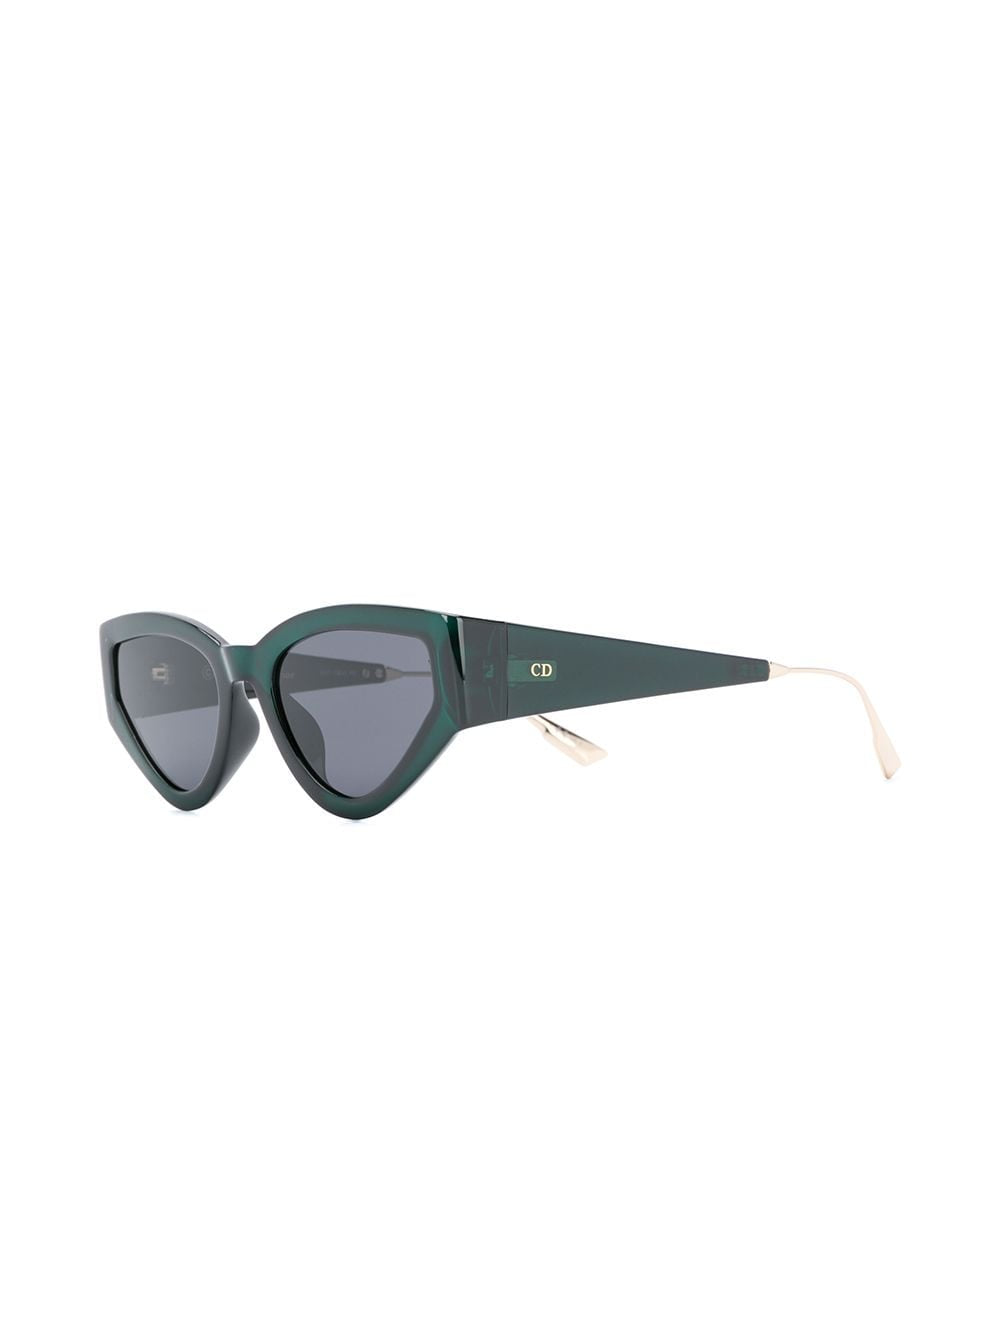 CATSTYLEDIOR1 GREEN BUTTERFLY SUNGLASSES